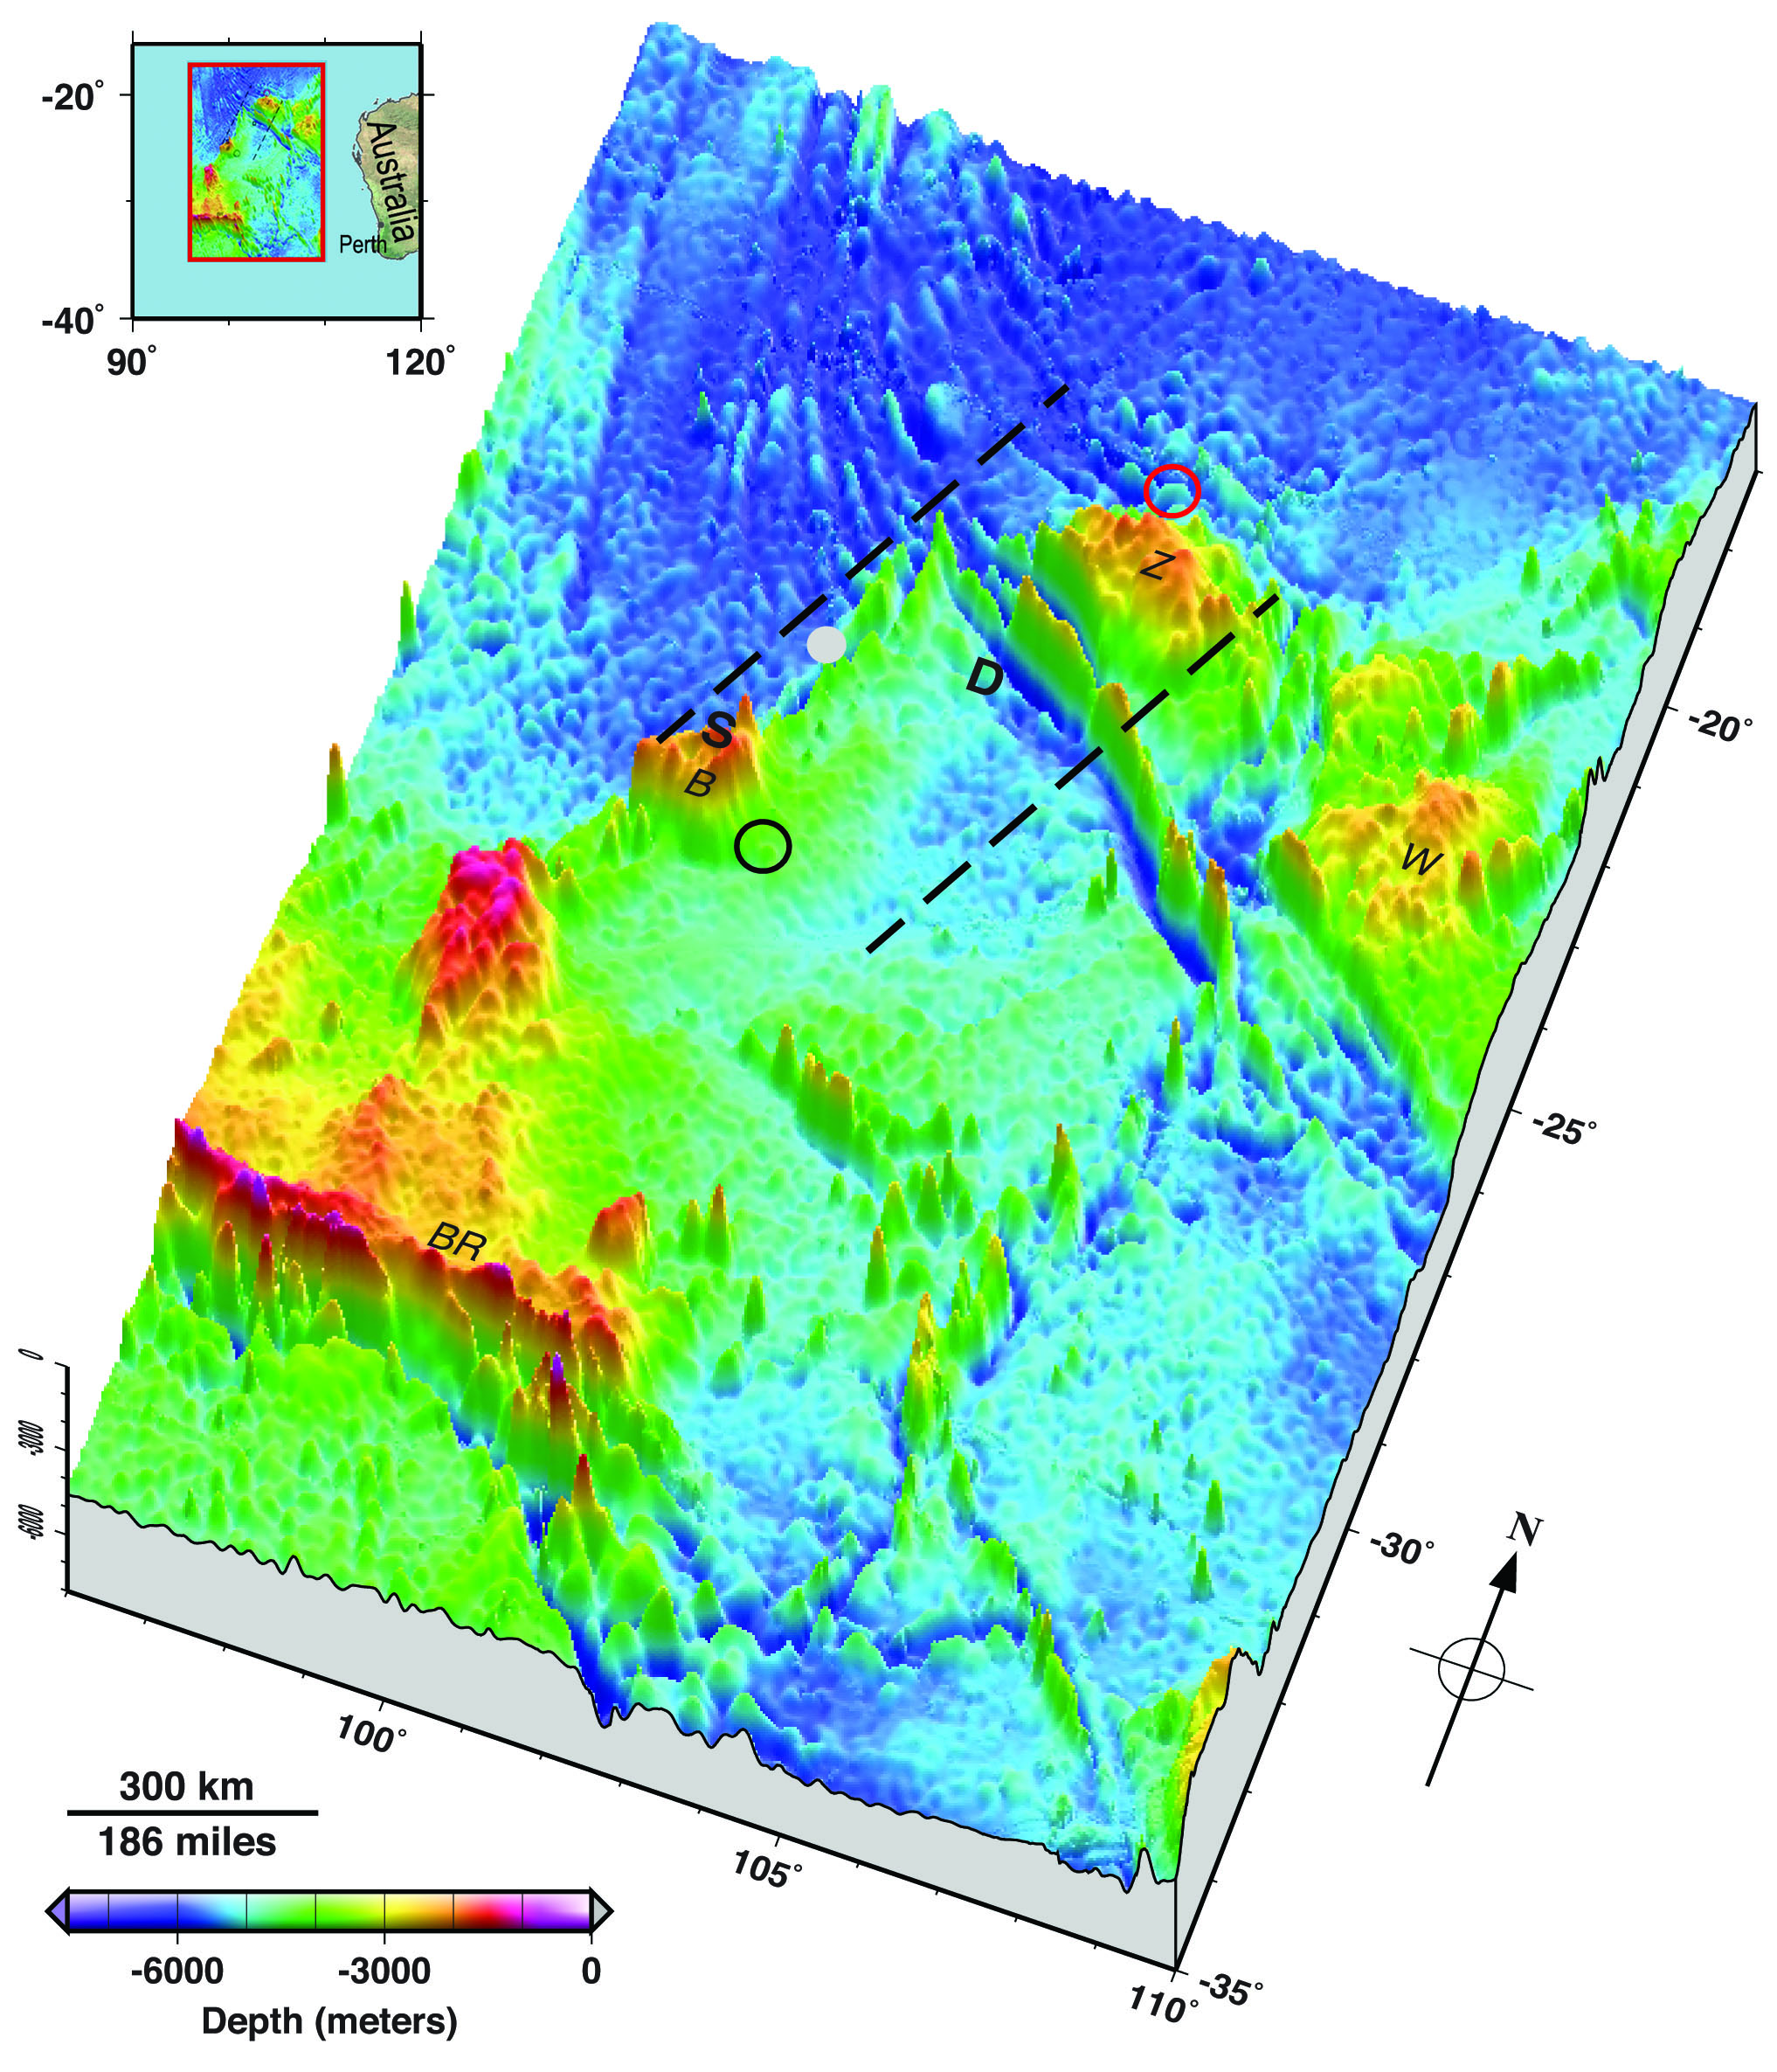 Seafloor experts publish new view of zone where Malaysia ... on ocean depth map, national geographic maps, http google maps, ocean satellite, google marine navigation maps, ocean bathymetry map, ocean wind maps, world underwater relief maps, ocean topography, ocean temperature maps, bathymetry of hawaiian islands maps, ocean bottom maps, very large world maps, ocean world map vector, ocean pacific website, lackawanna pa military maps, bing topographic maps, ocean edge villages map, ocean geography map,